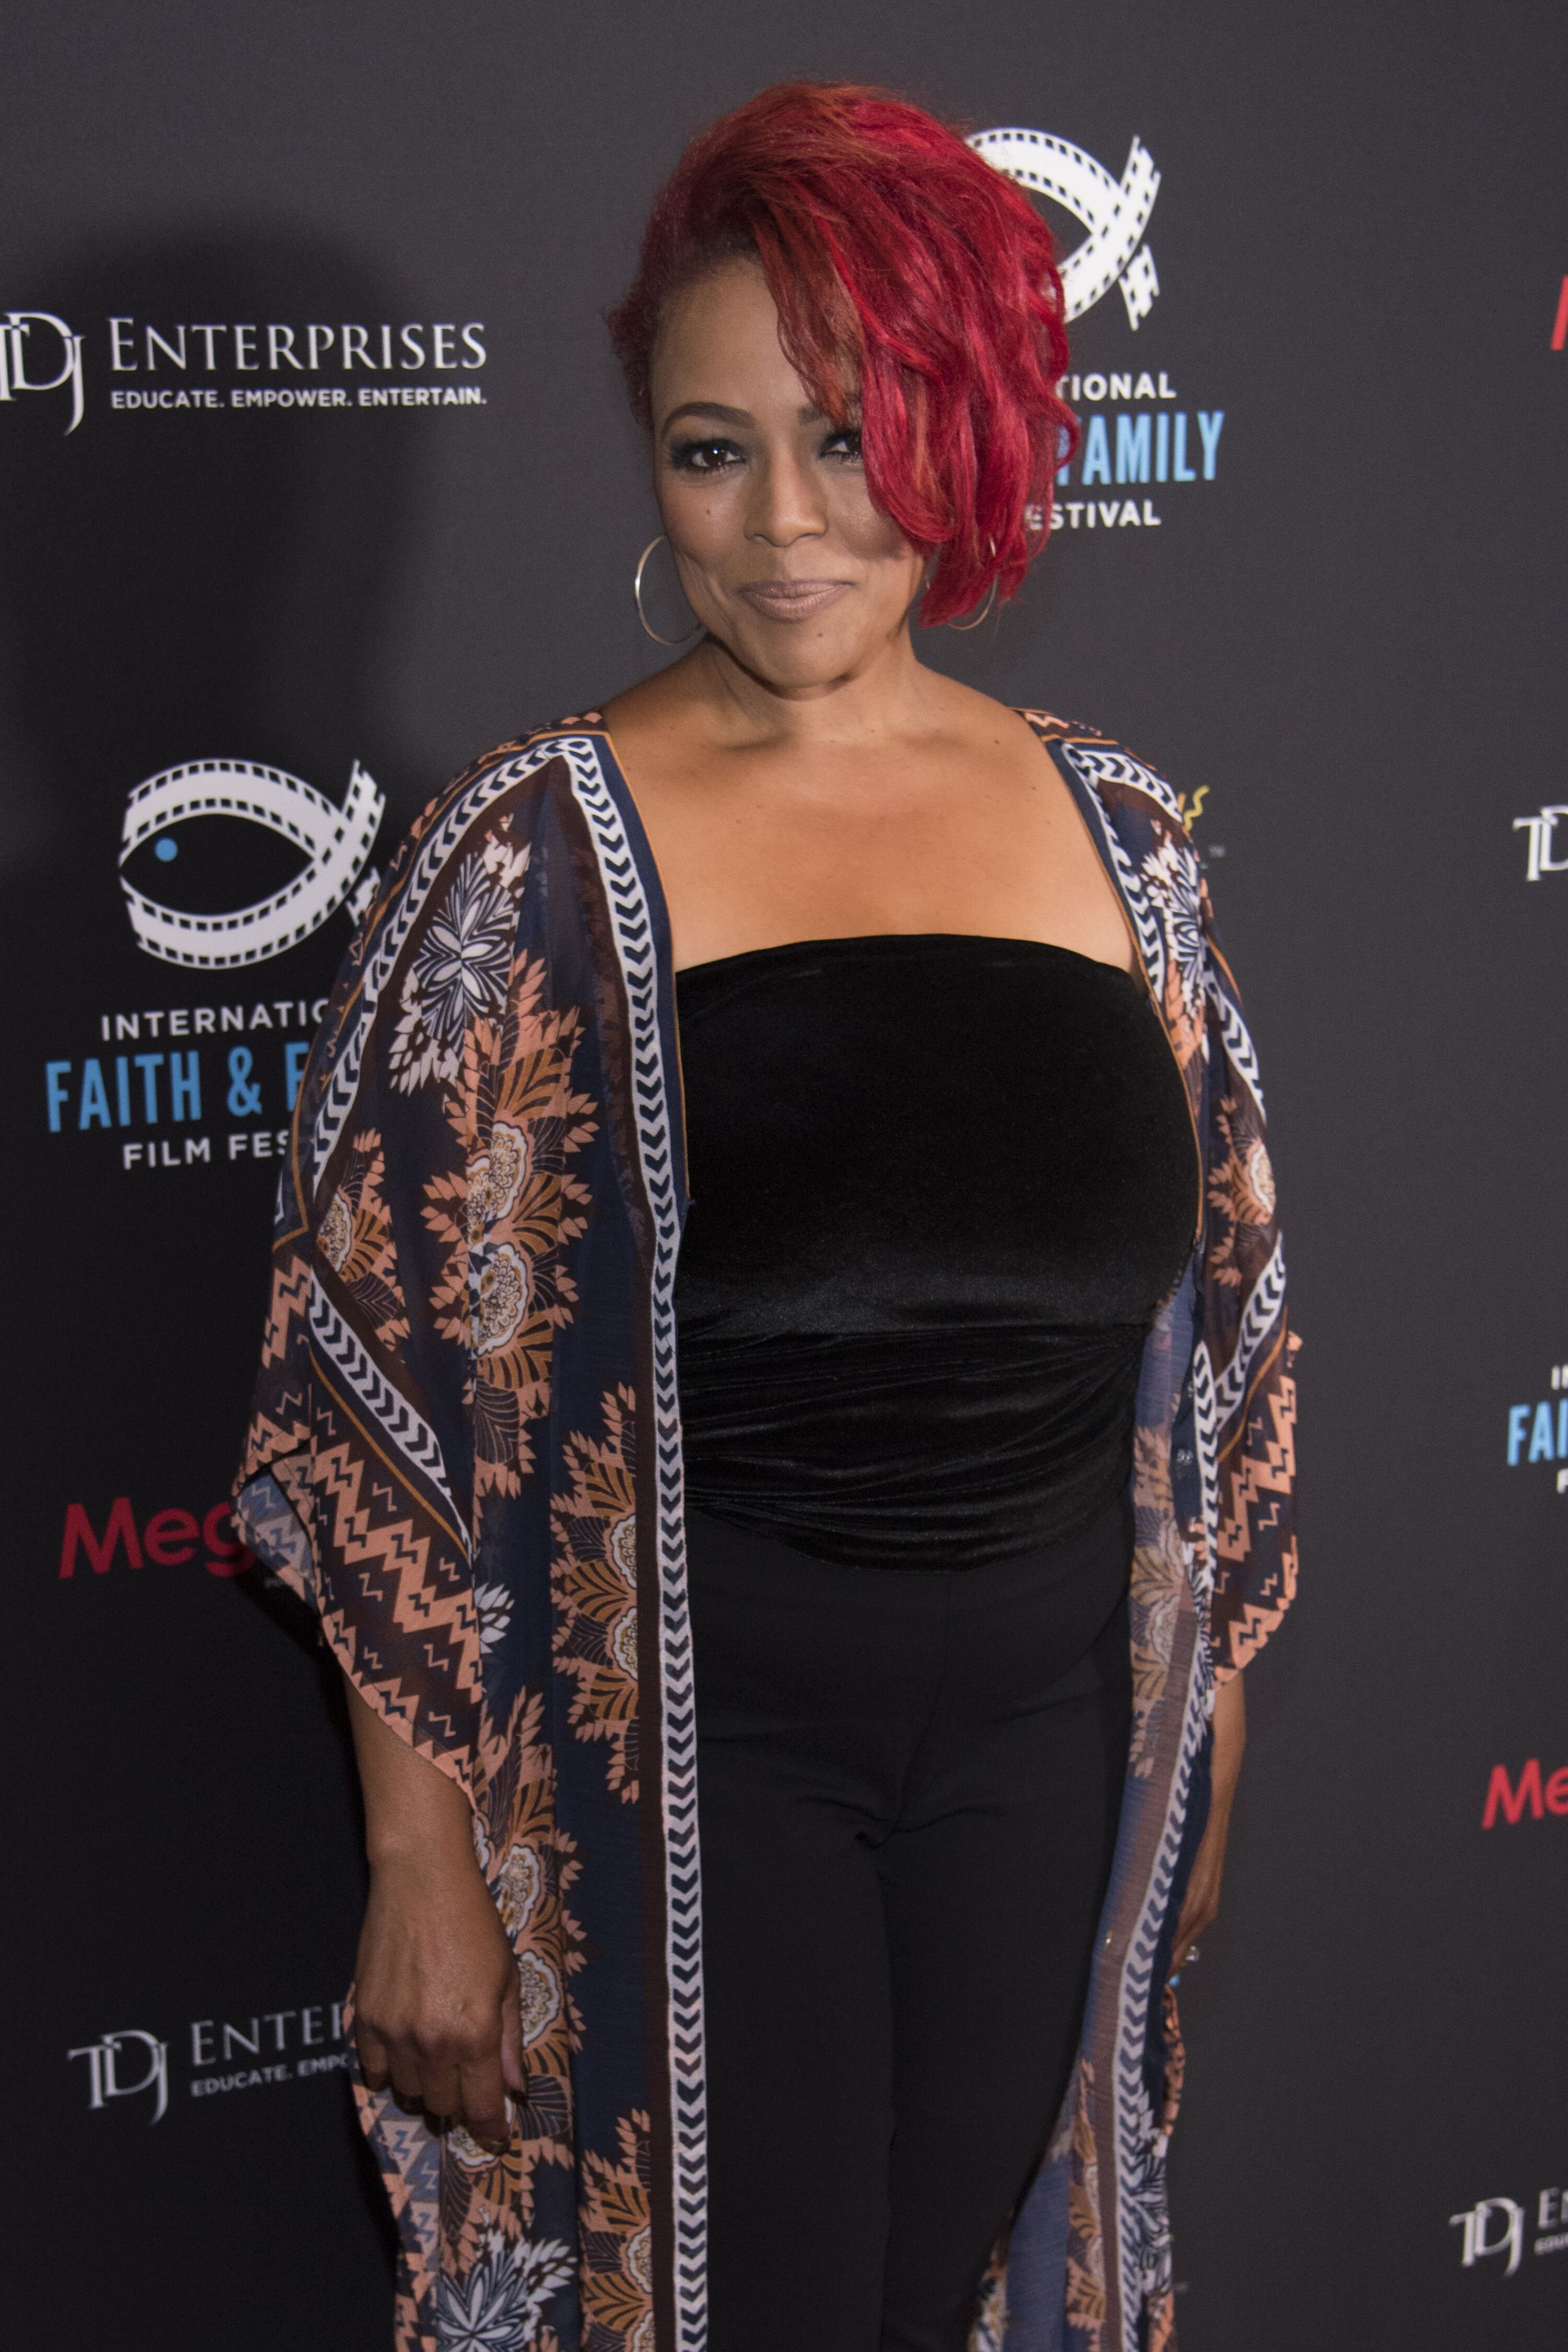 Kim Fields poses for a photo before a screening of 'A Question of Faith' during the MegaFest International Faith & Family Film Festival at Omni Hotel on July 1, 2017 | Photo: Getty Images